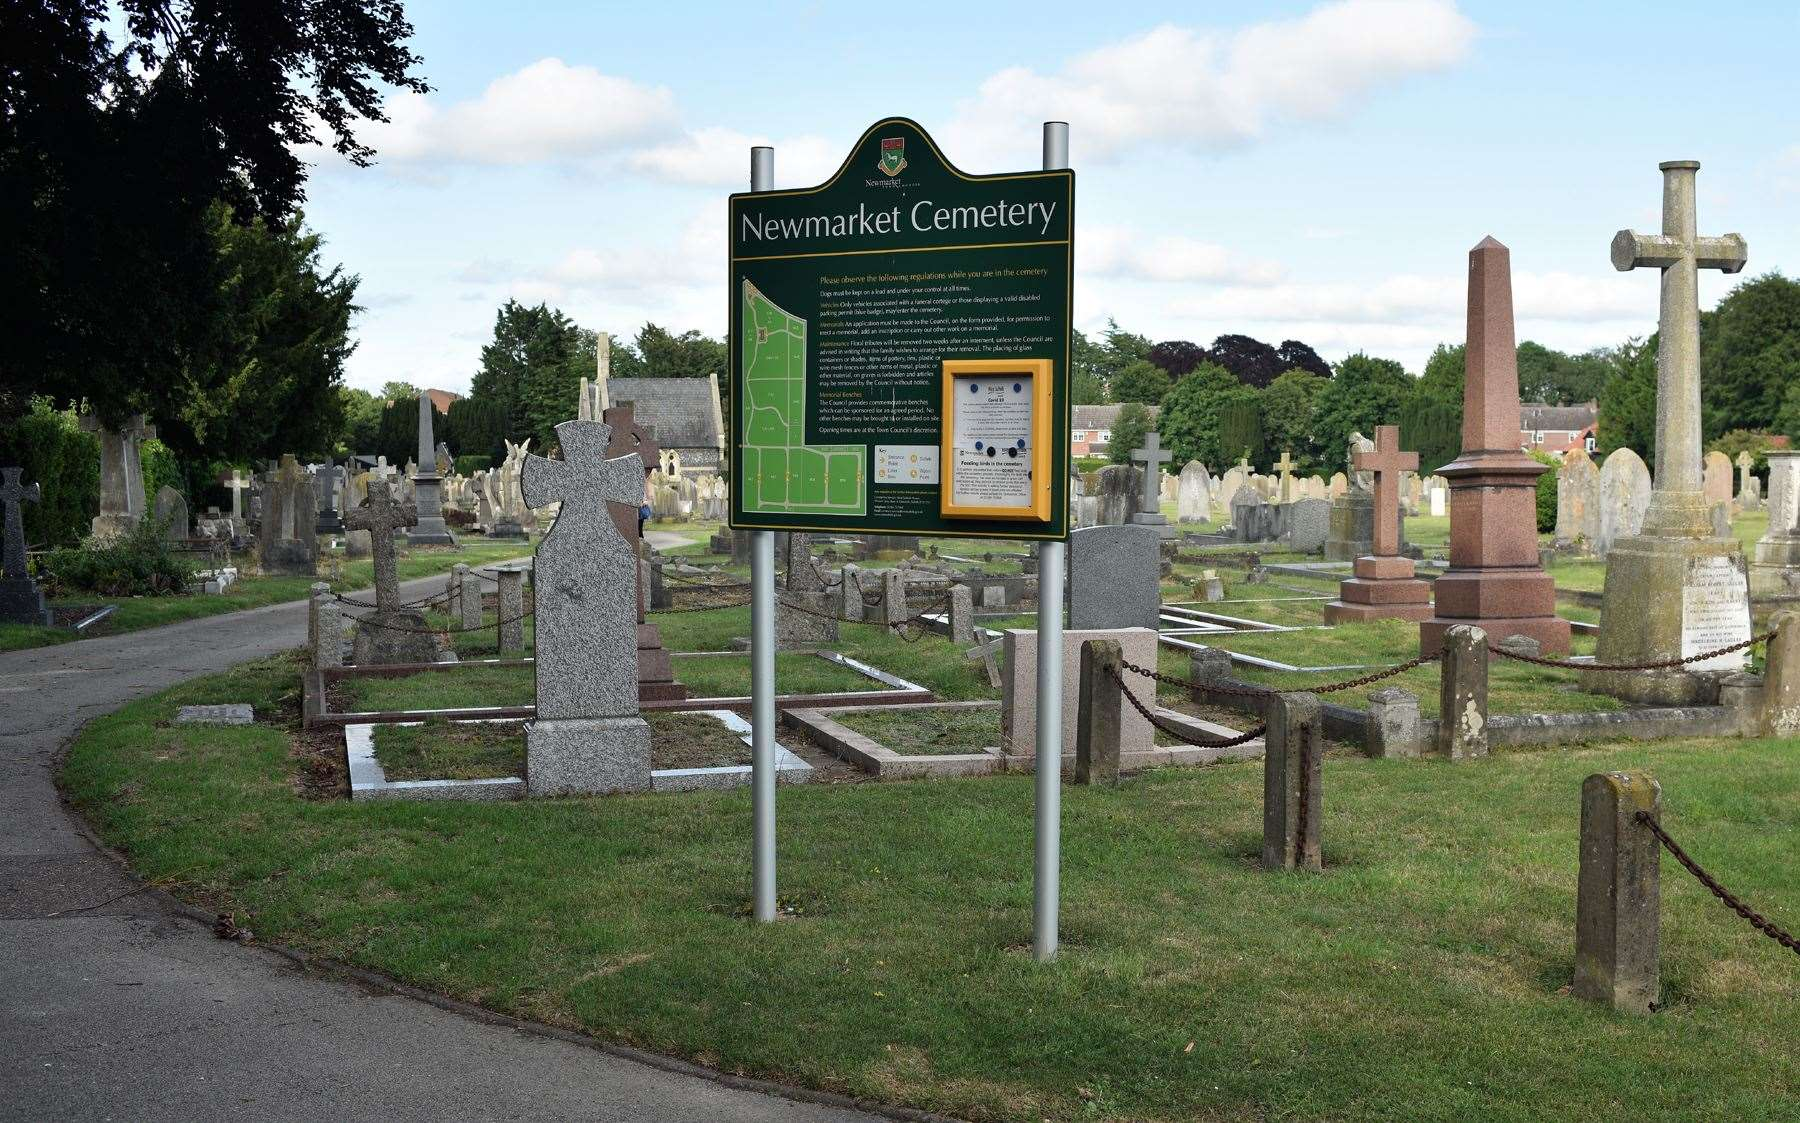 Visitors to Newmarket cemetery are being abused and threatened by members of the travelling community when they visit the graves of their loved ones, a council was told on Monday.